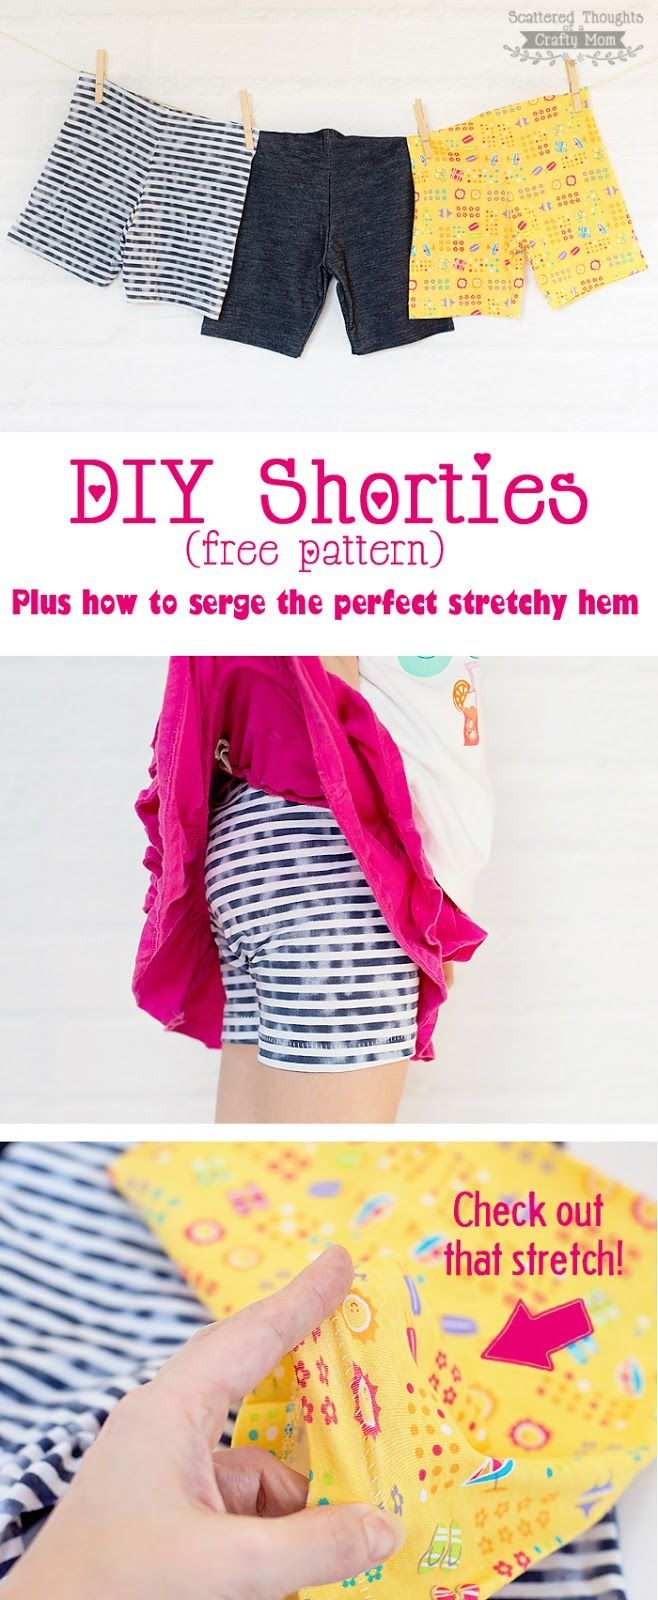 Free Shortie pattern plus how to Serge the perfect stretchy hem. (w/ the blind hem foot.)